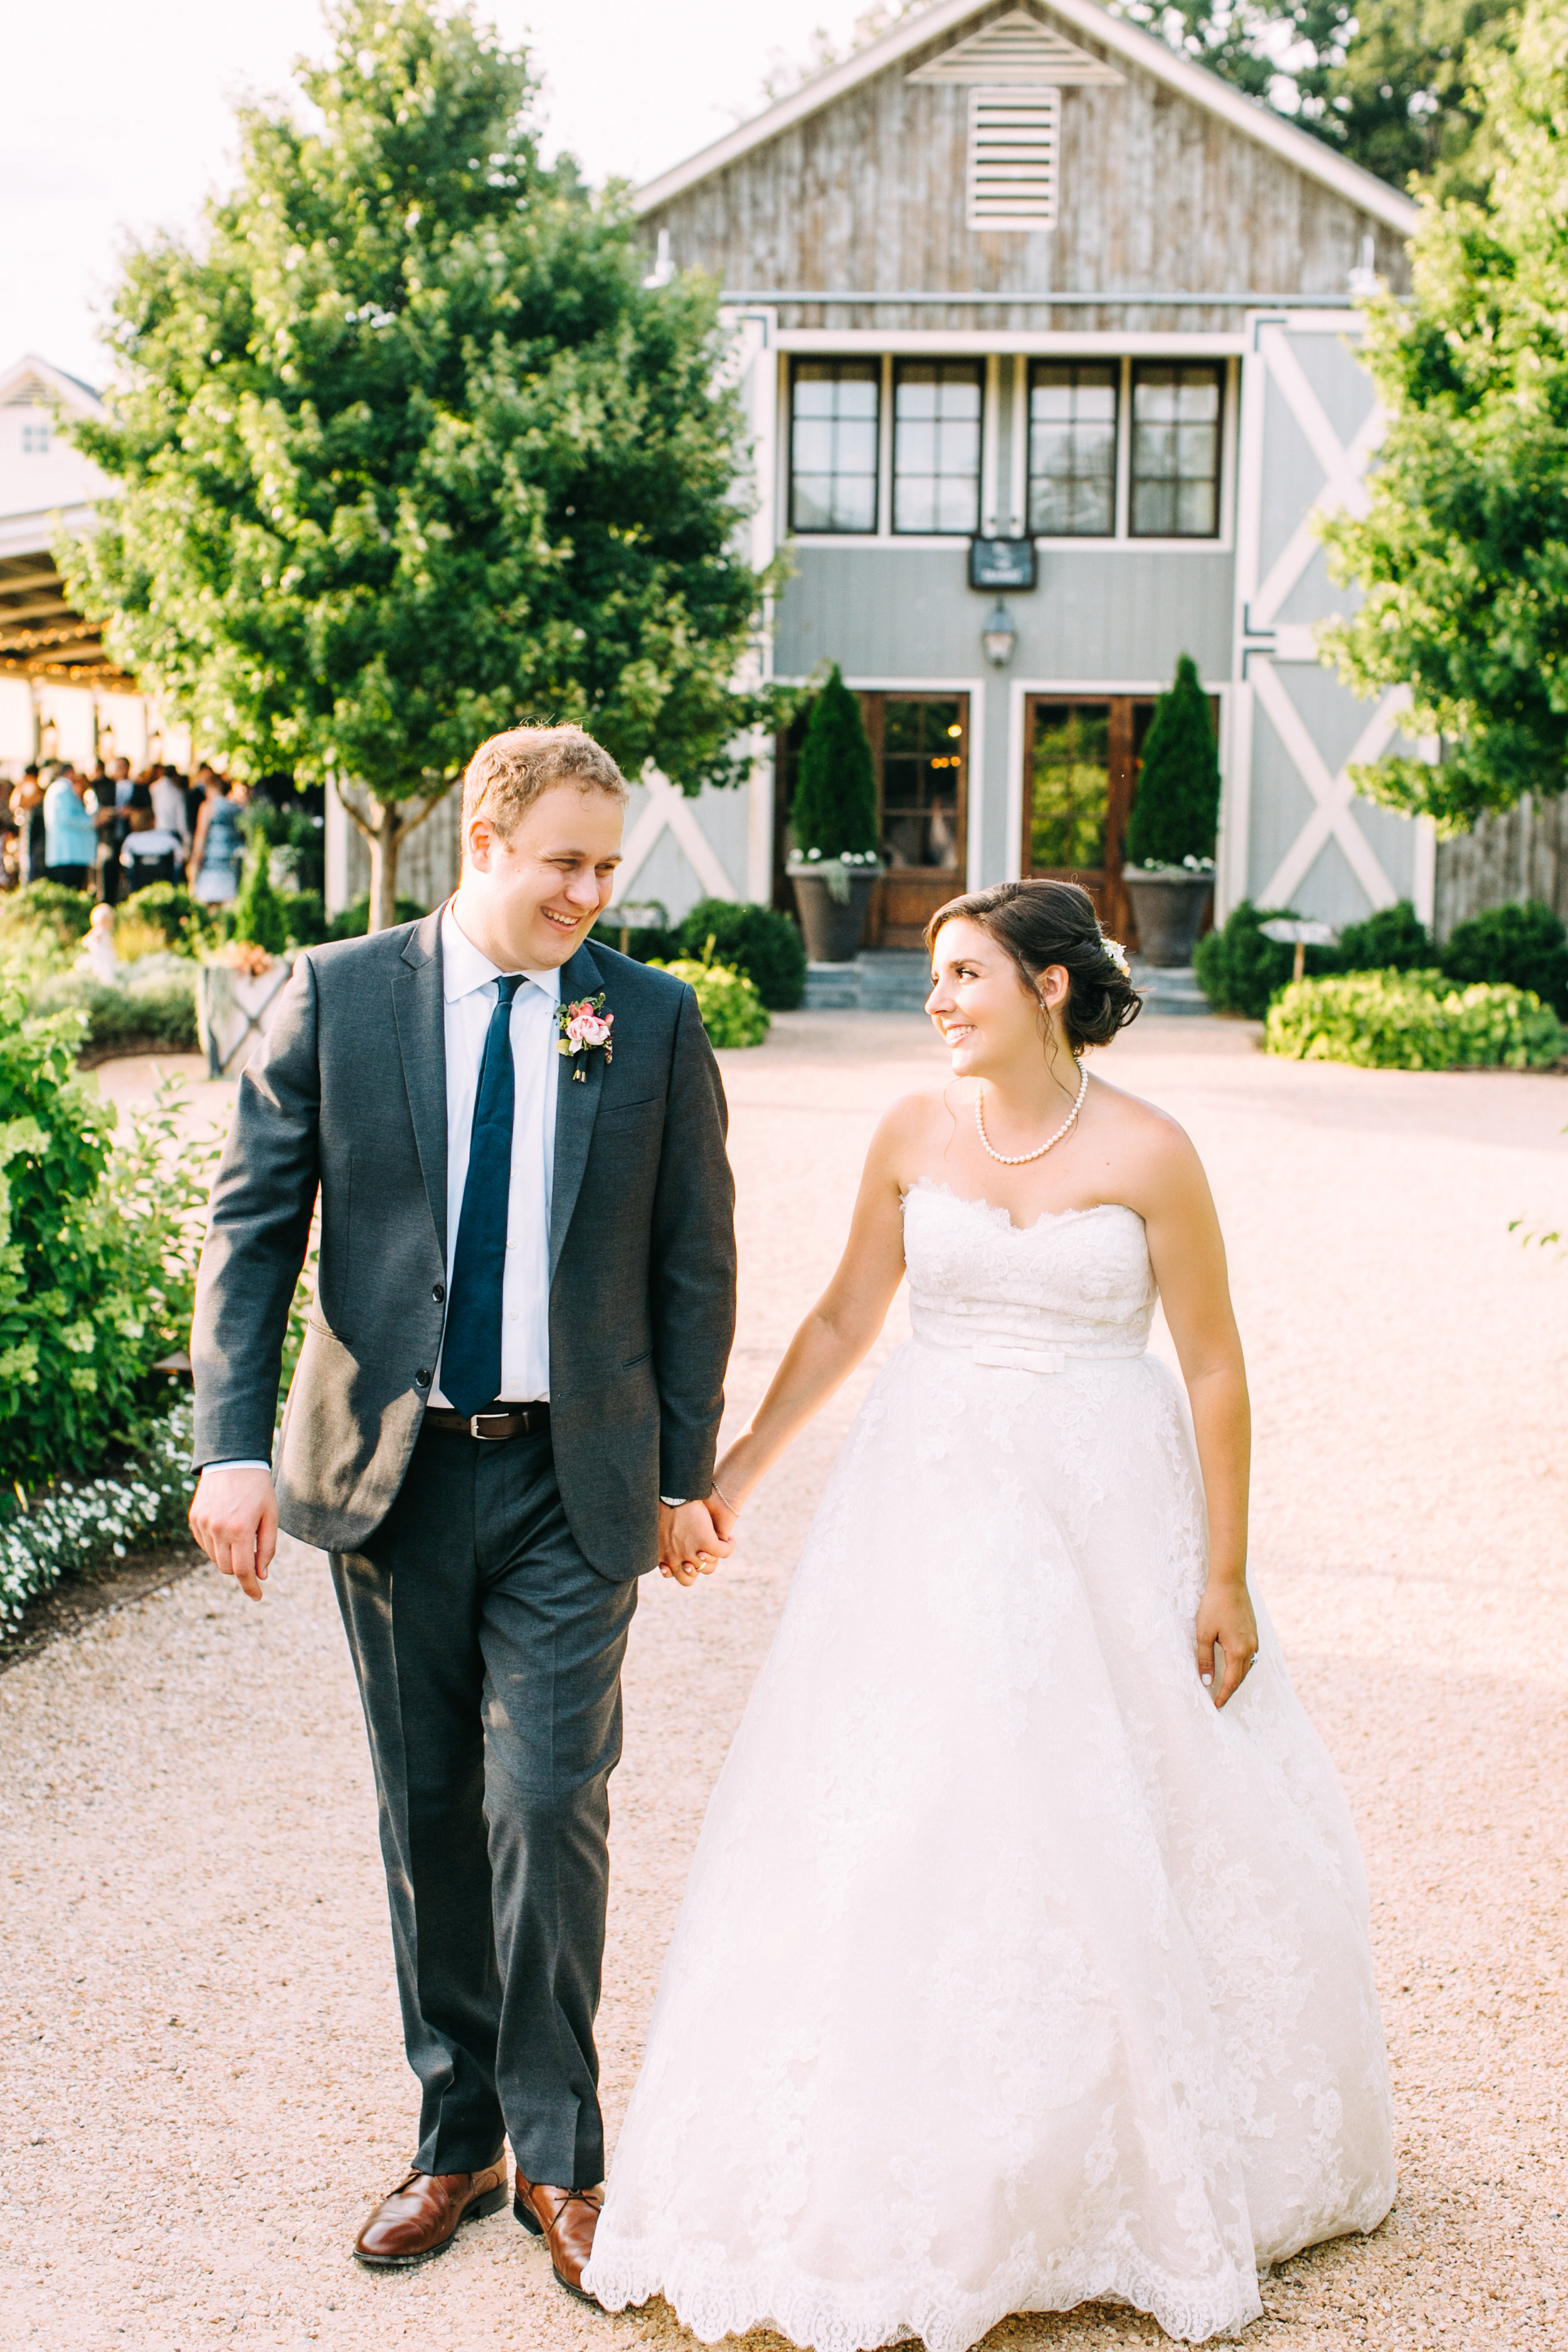 katie stoops photography-pippin hill-ashley baber weddings29.jpg